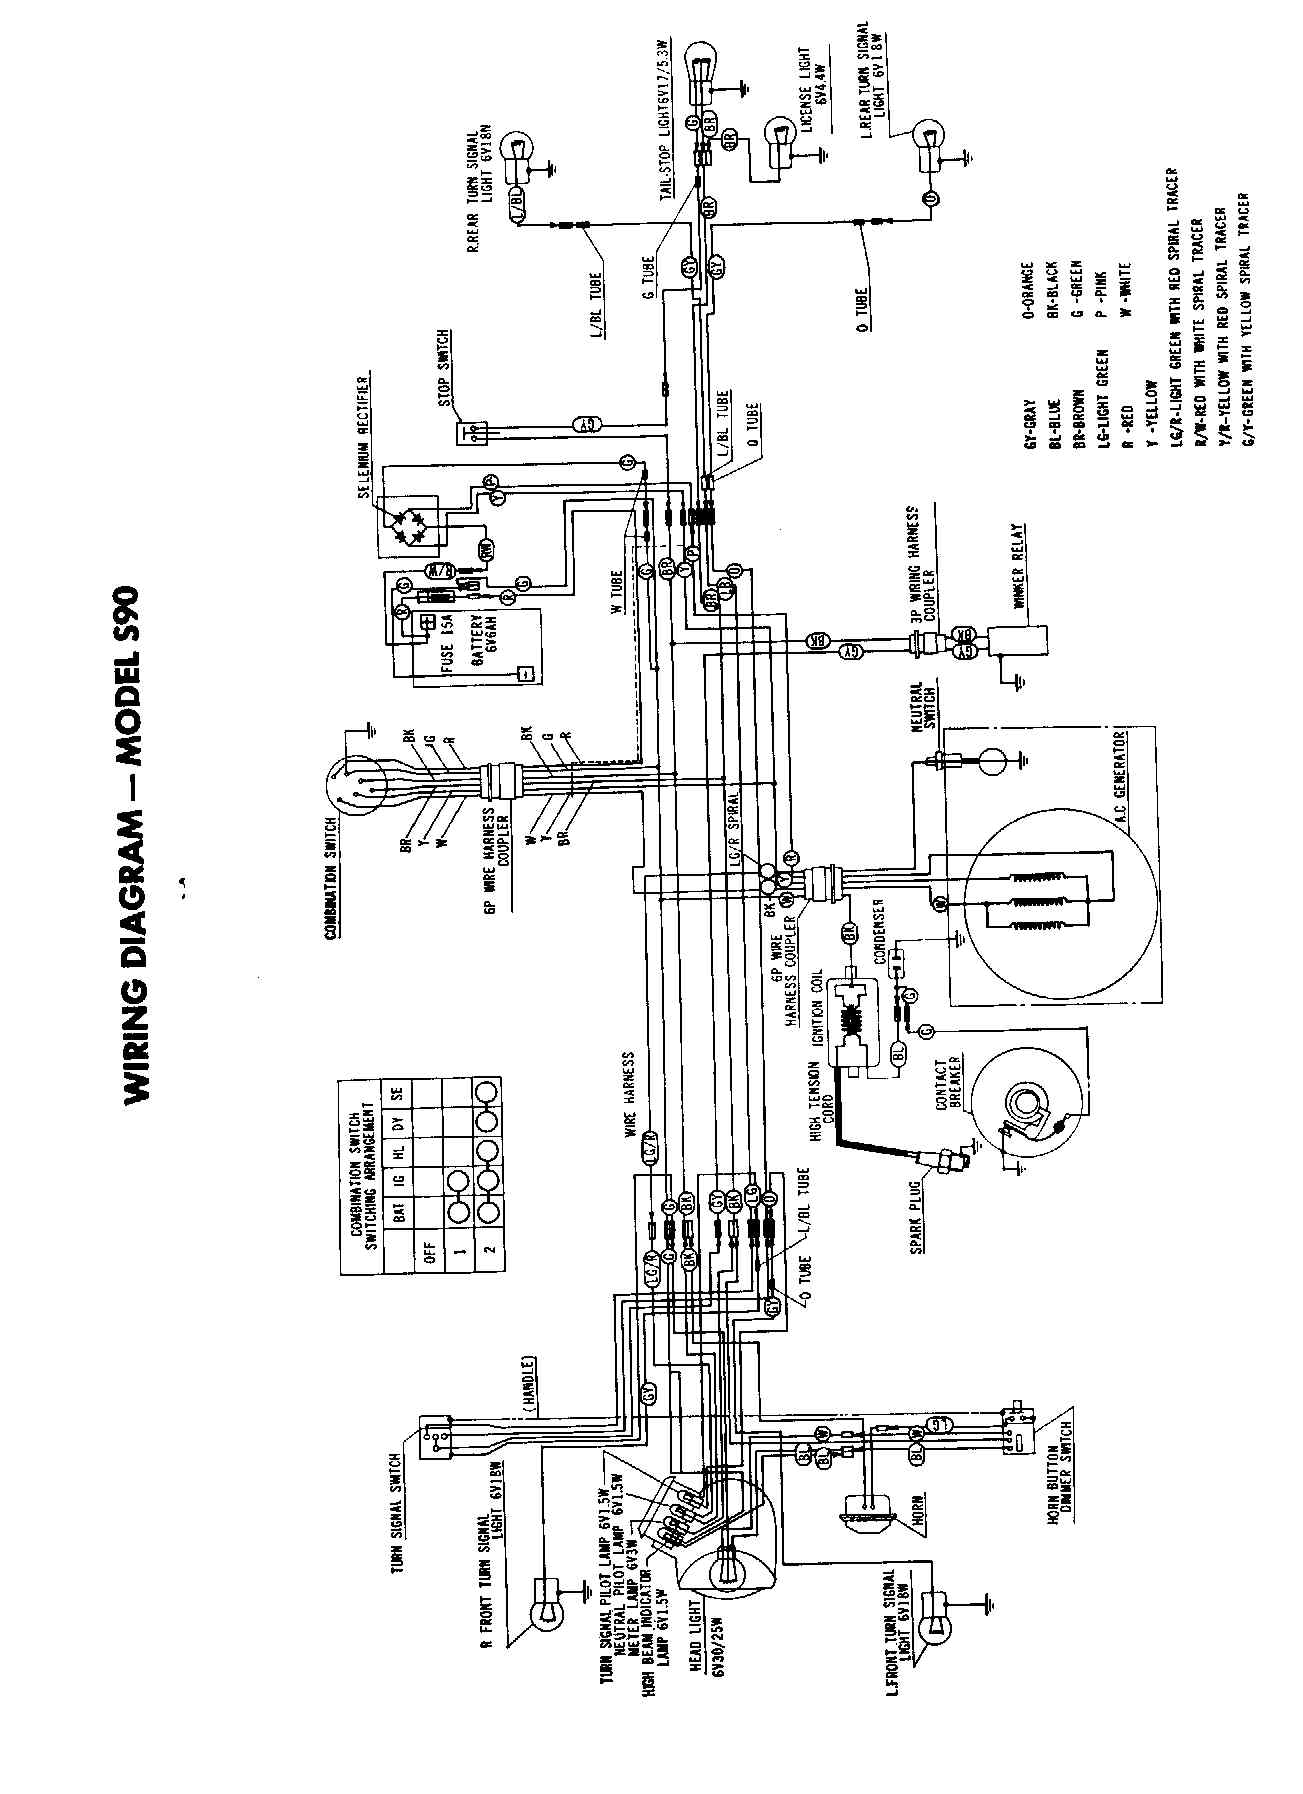 1982 honda z50r wiring diagram tibia and fibula blank 1964 50 scooter diagrams best library z50 90cc singles